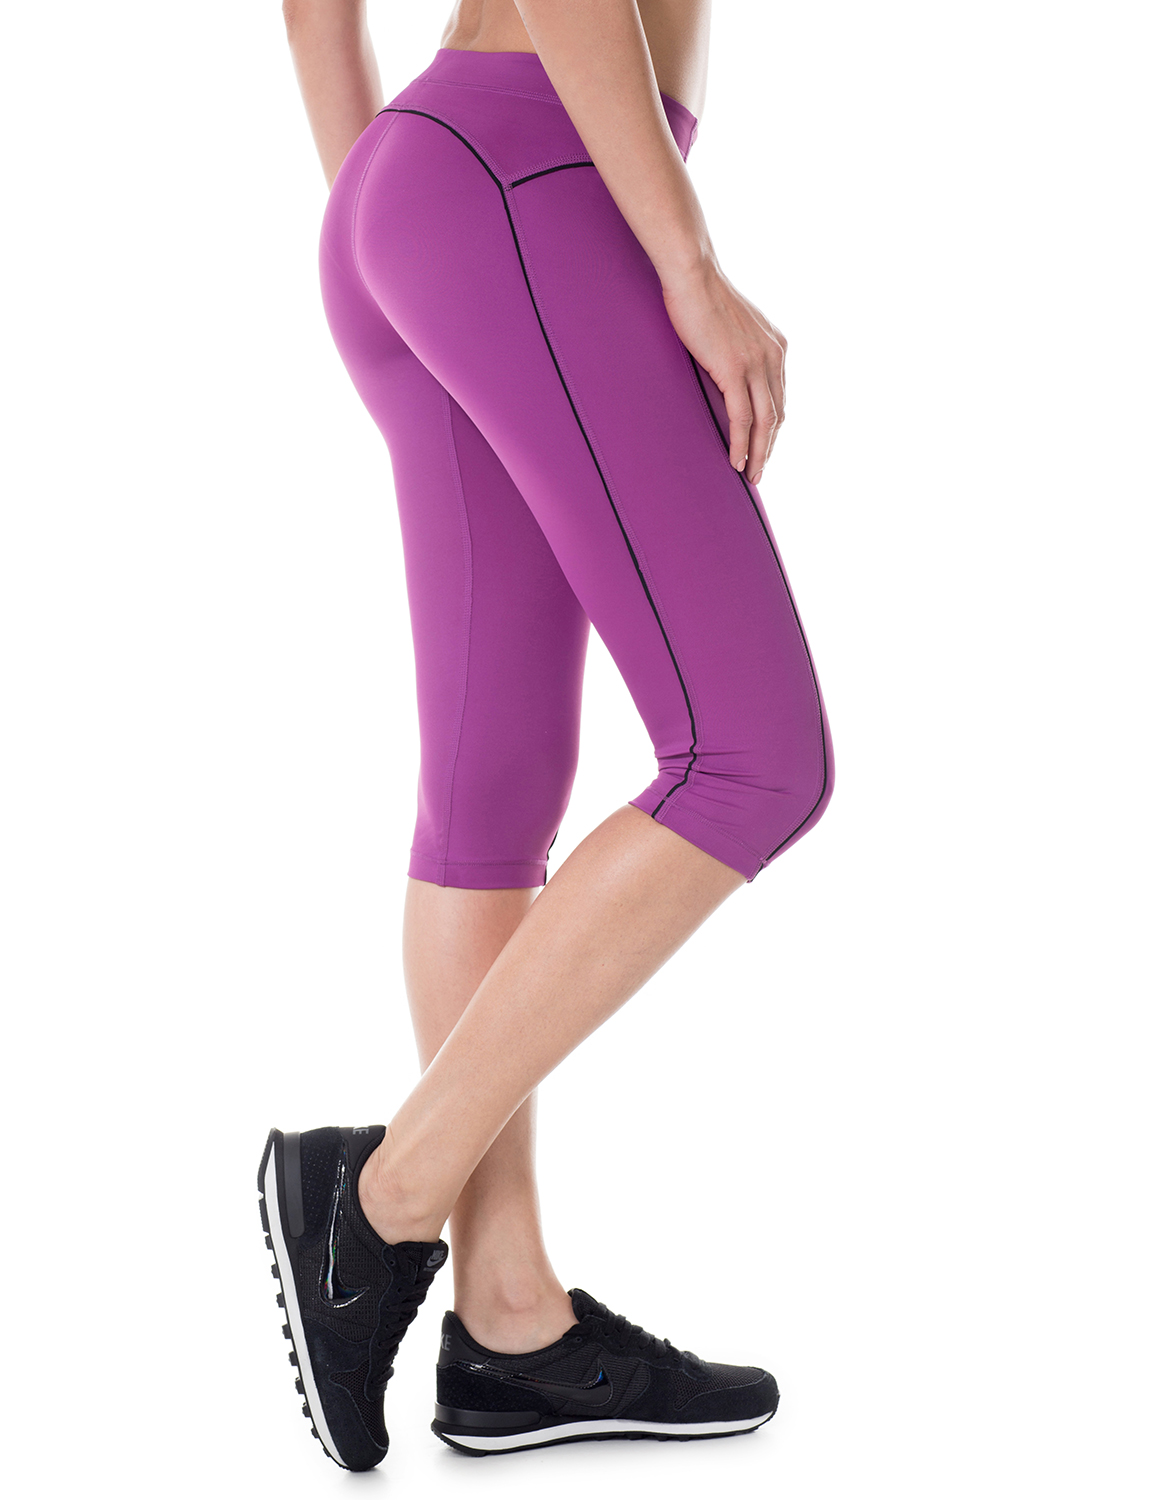 Women's Knee Tight Fit Yoga Running Workout Sports Capri Leggings Pants брюки accelerate tight